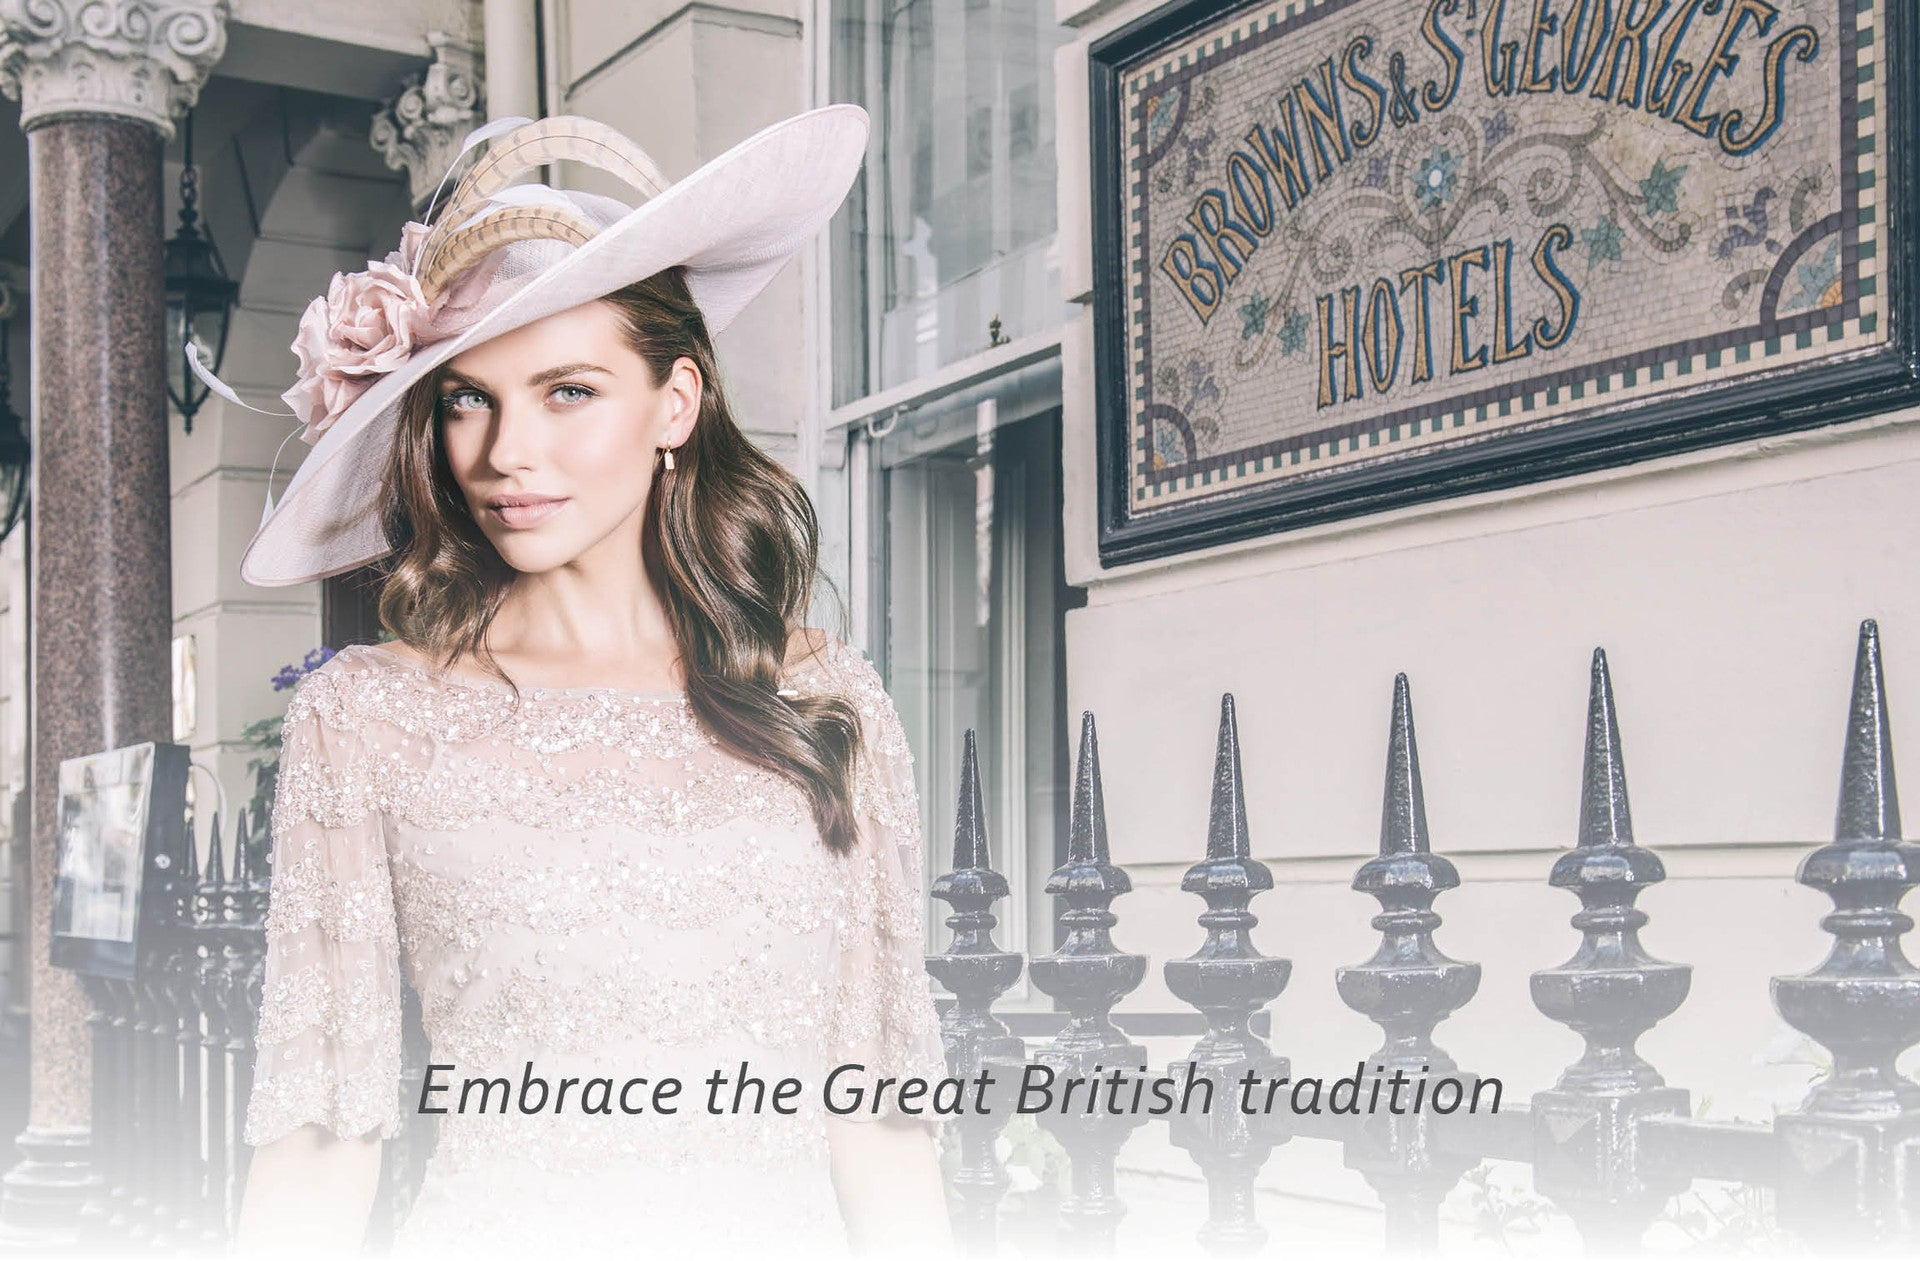 Embrace the great British tradition